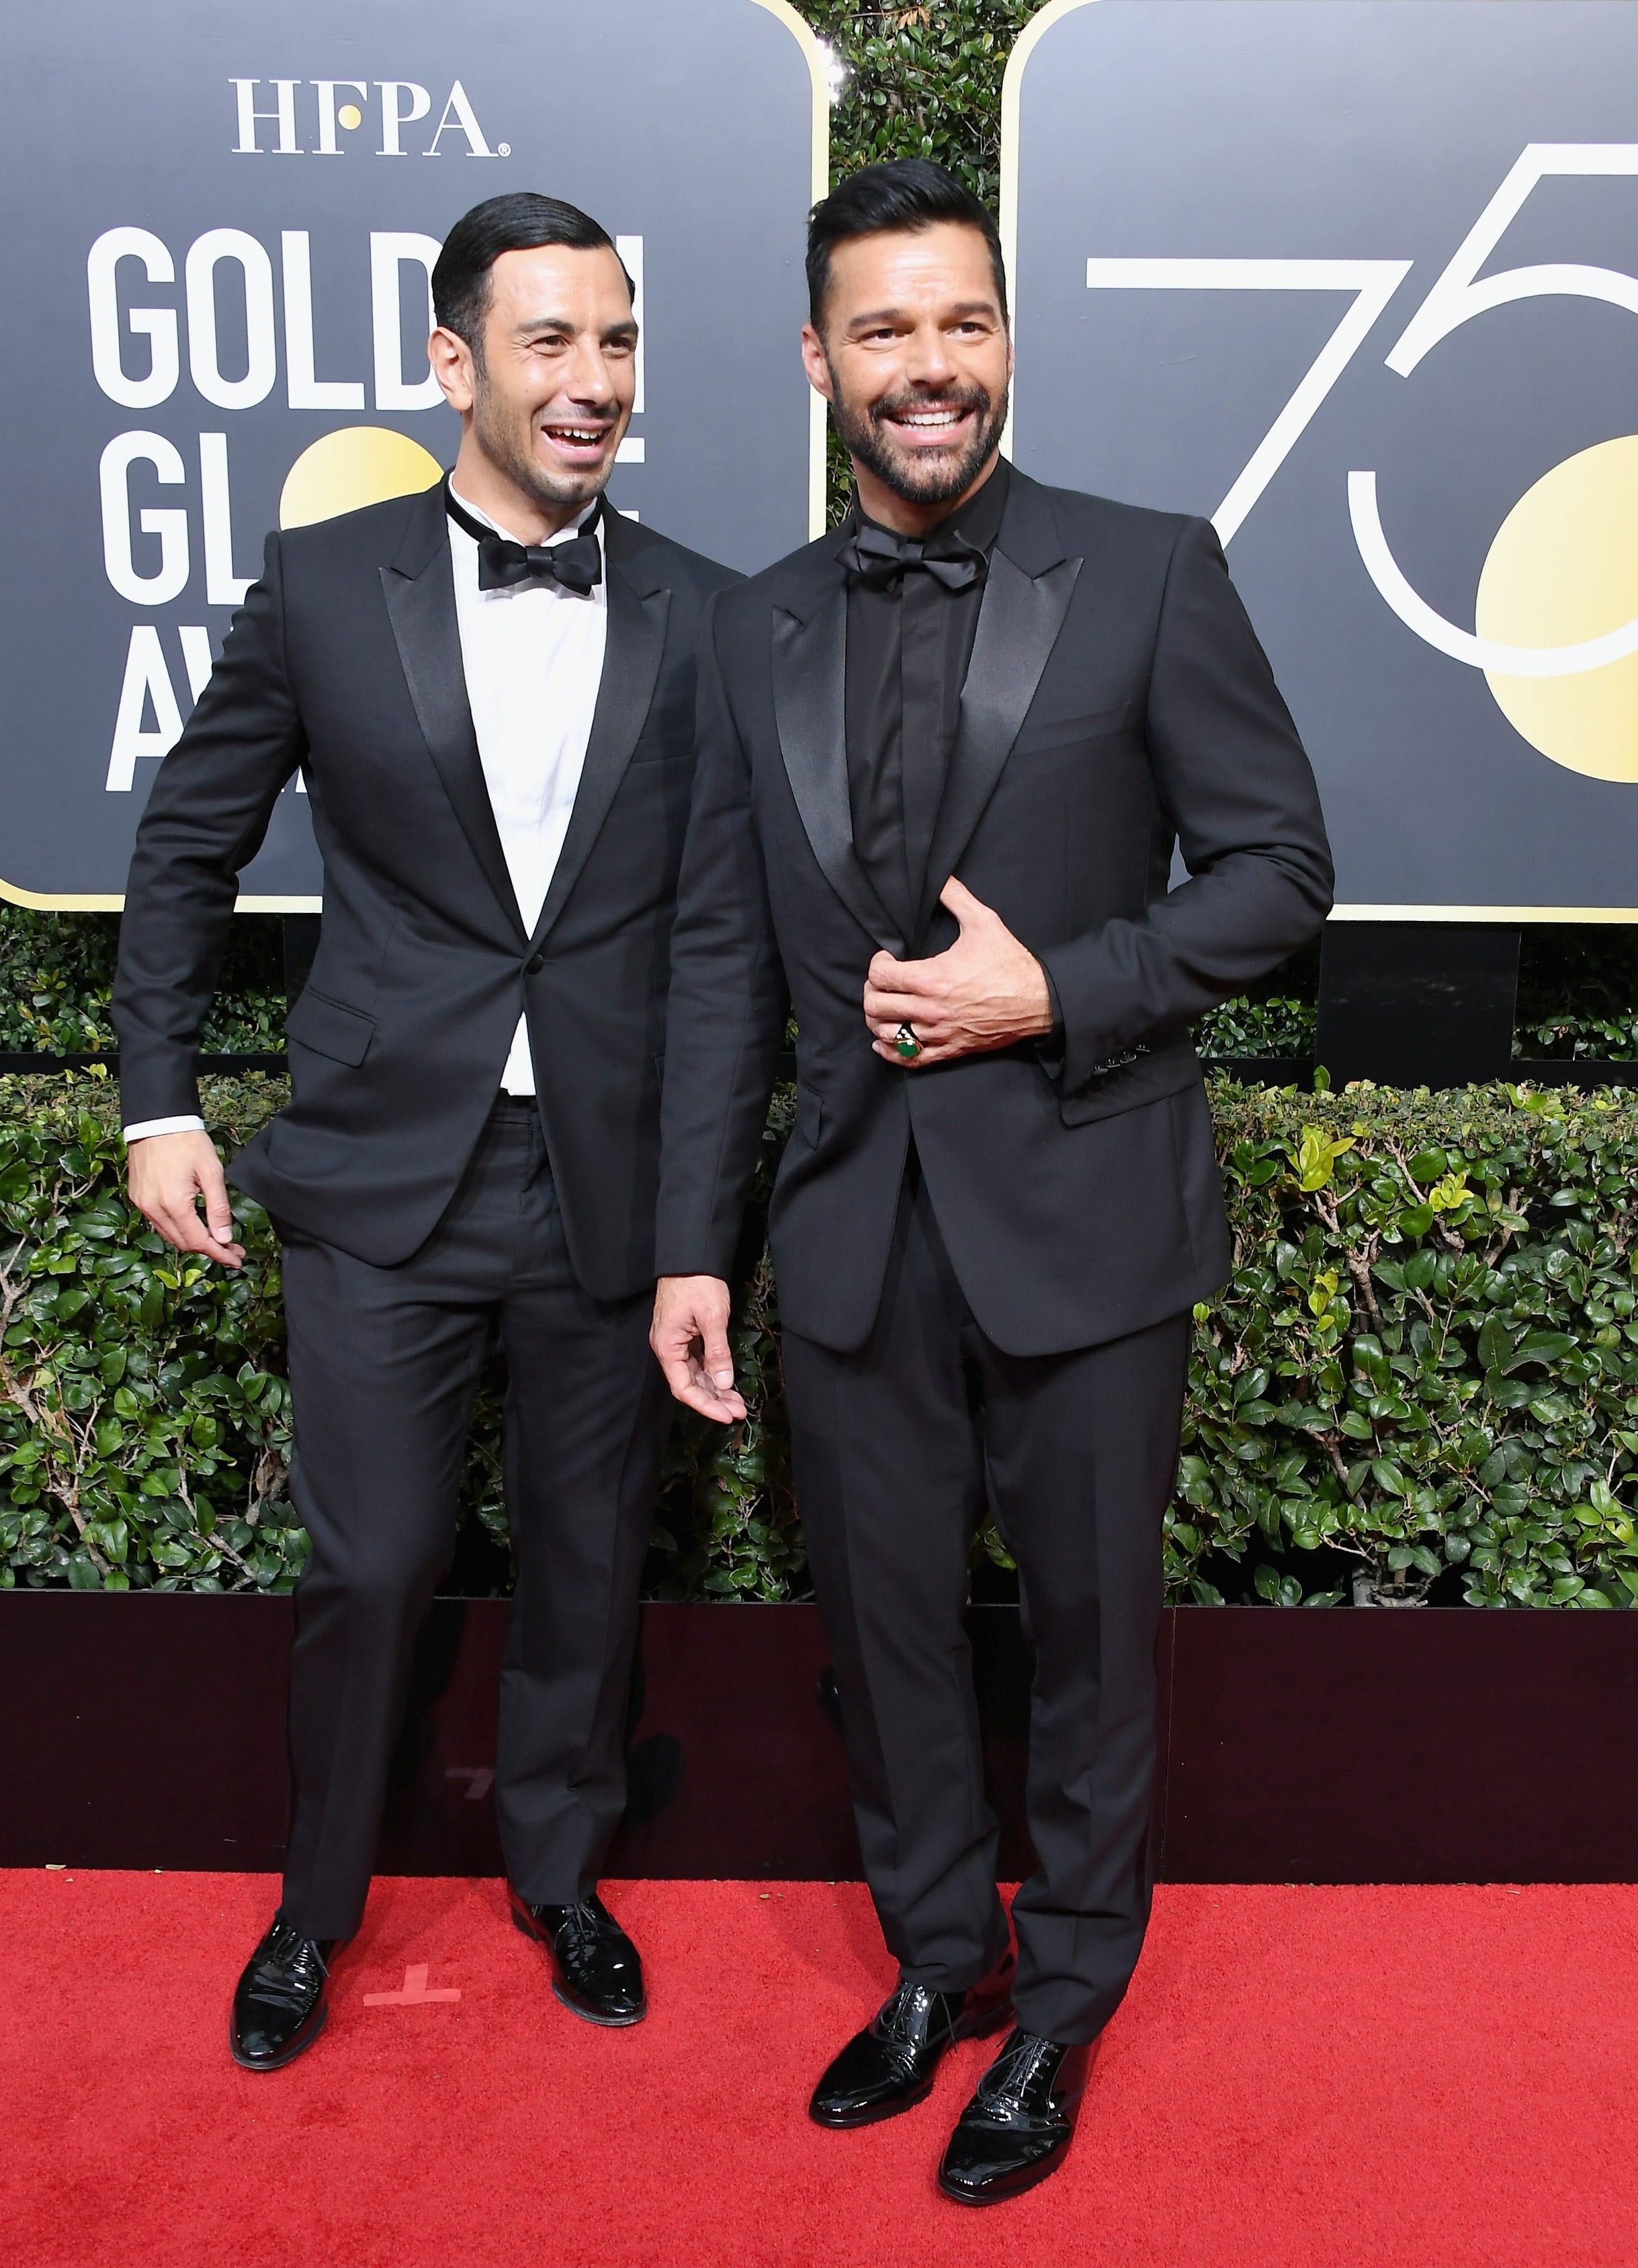 Ricky Martin and husband show off 'beautiful' baby girl Lucia